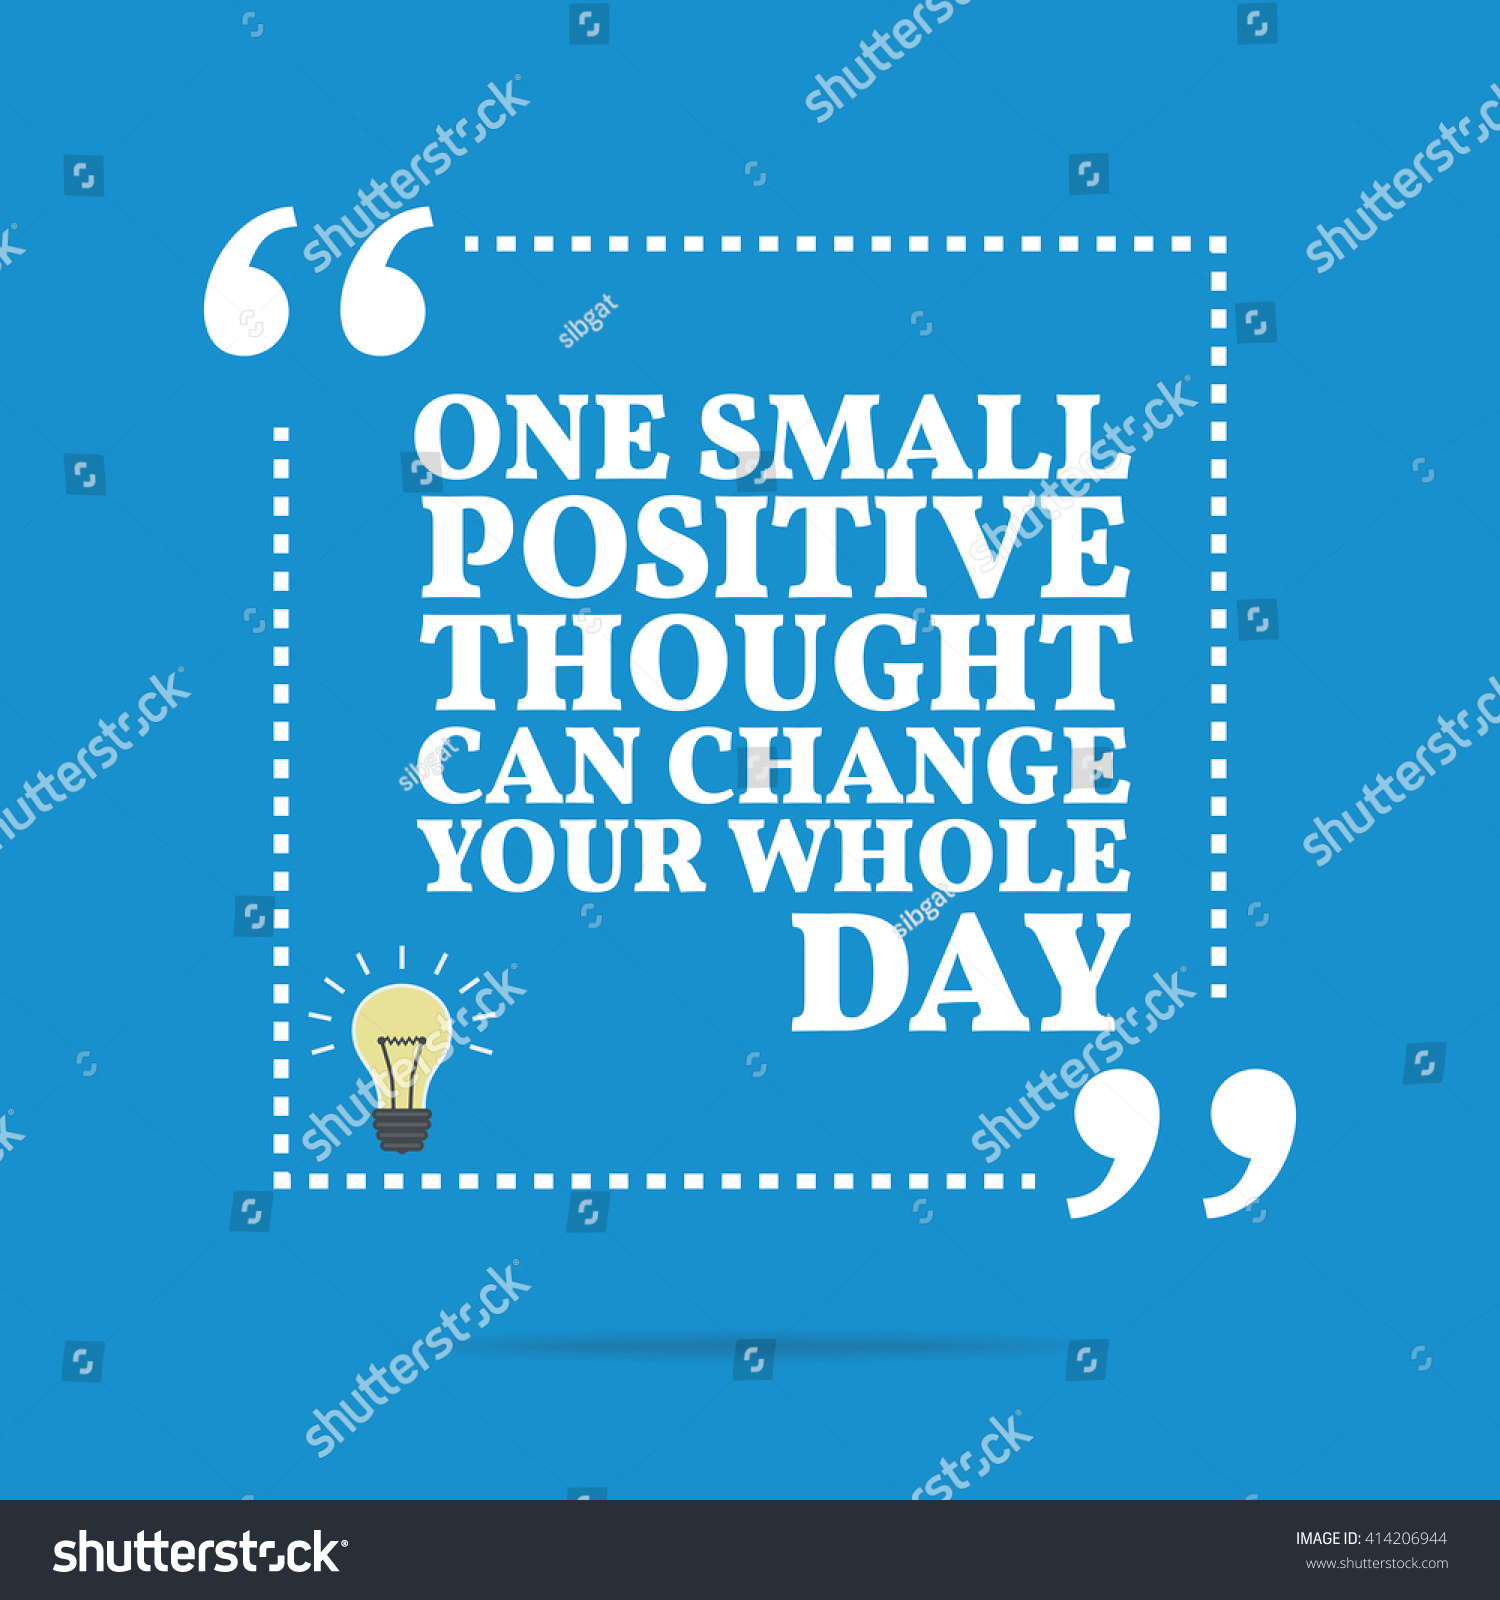 Thought Of The Day Motivational Inspirational Motivational Quote One Small Positive Stock Vector